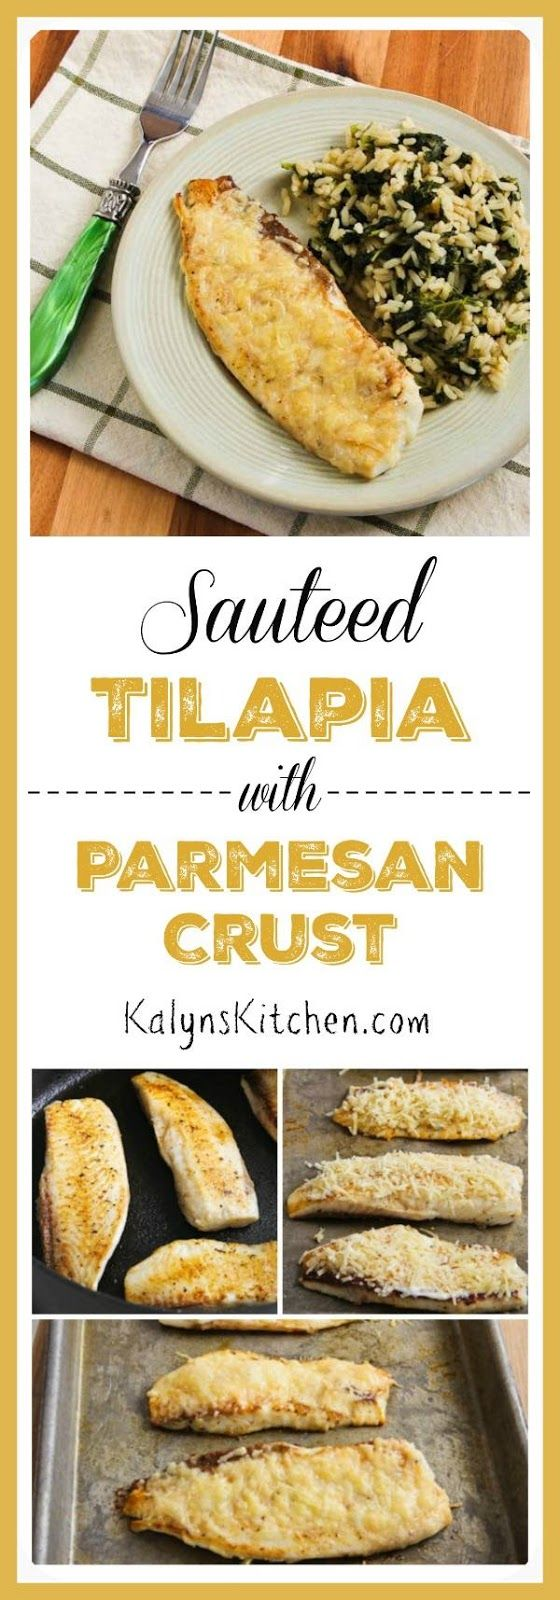 Sauteed Tilapia with Parmesan Crust is easy and delicious; use any ...